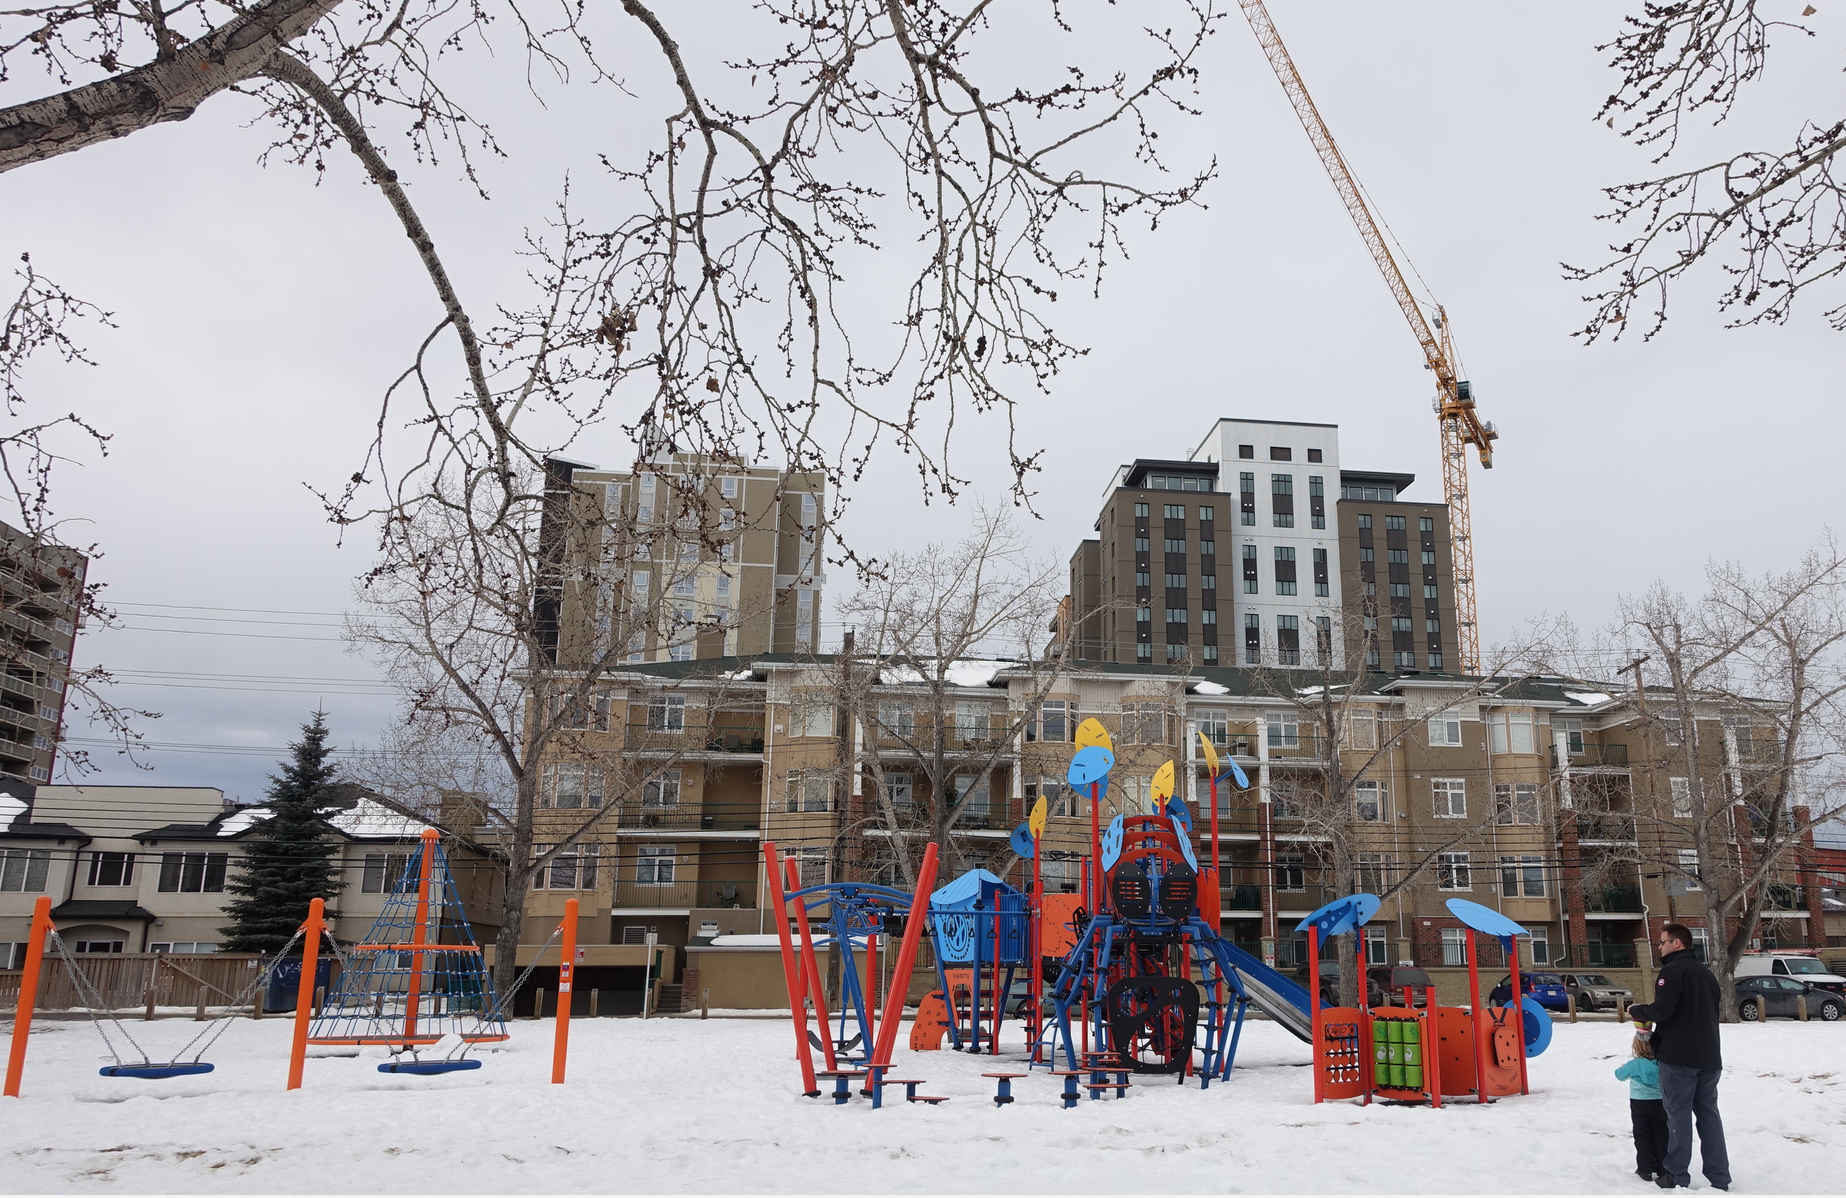 While the Manchester school closed a few years back, there is a lovely community playground.